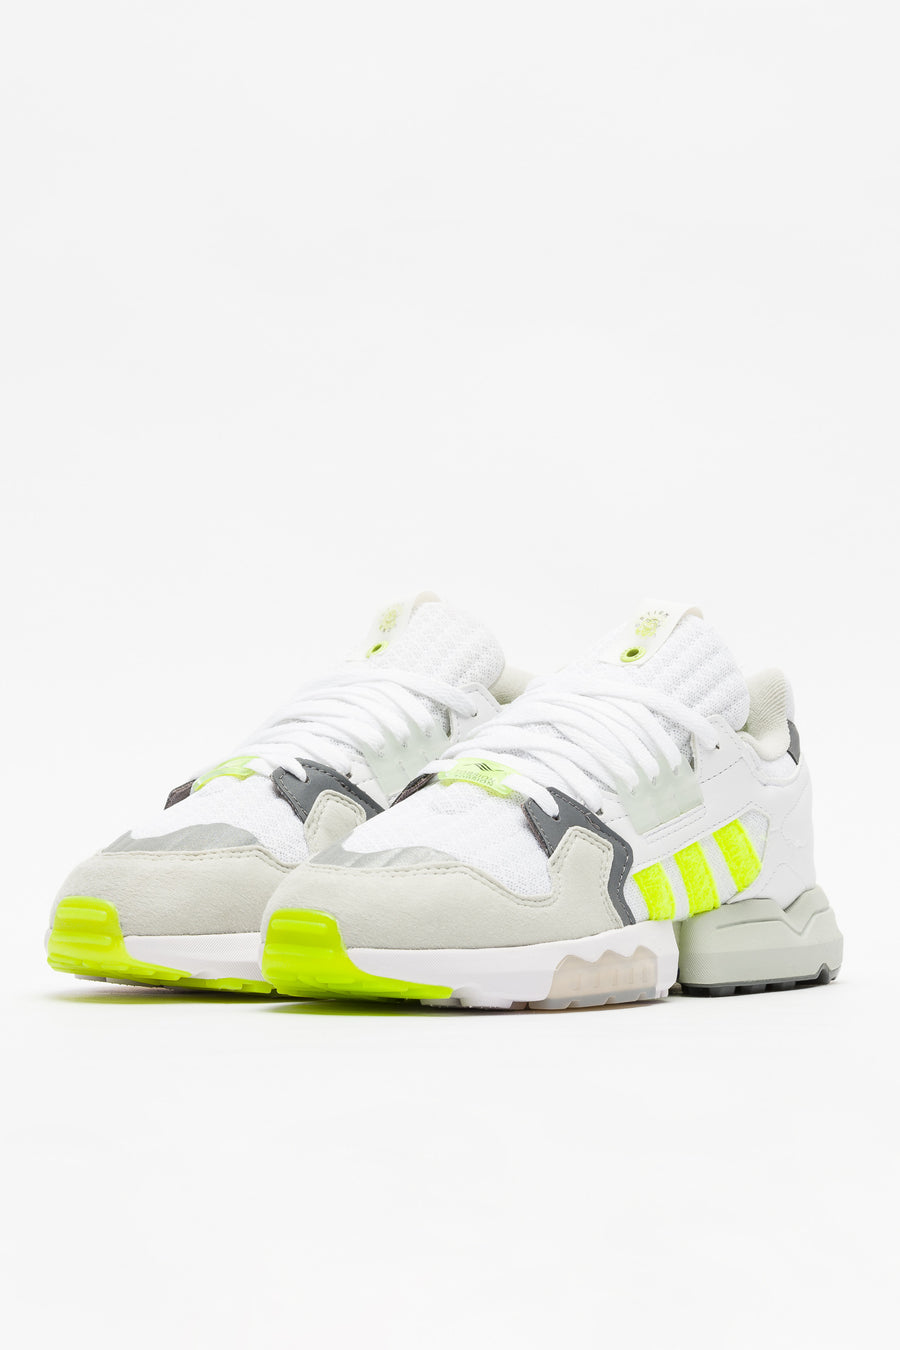 adidas Footpatrol ZX Torsion in White/Yellow/Grey - Notre